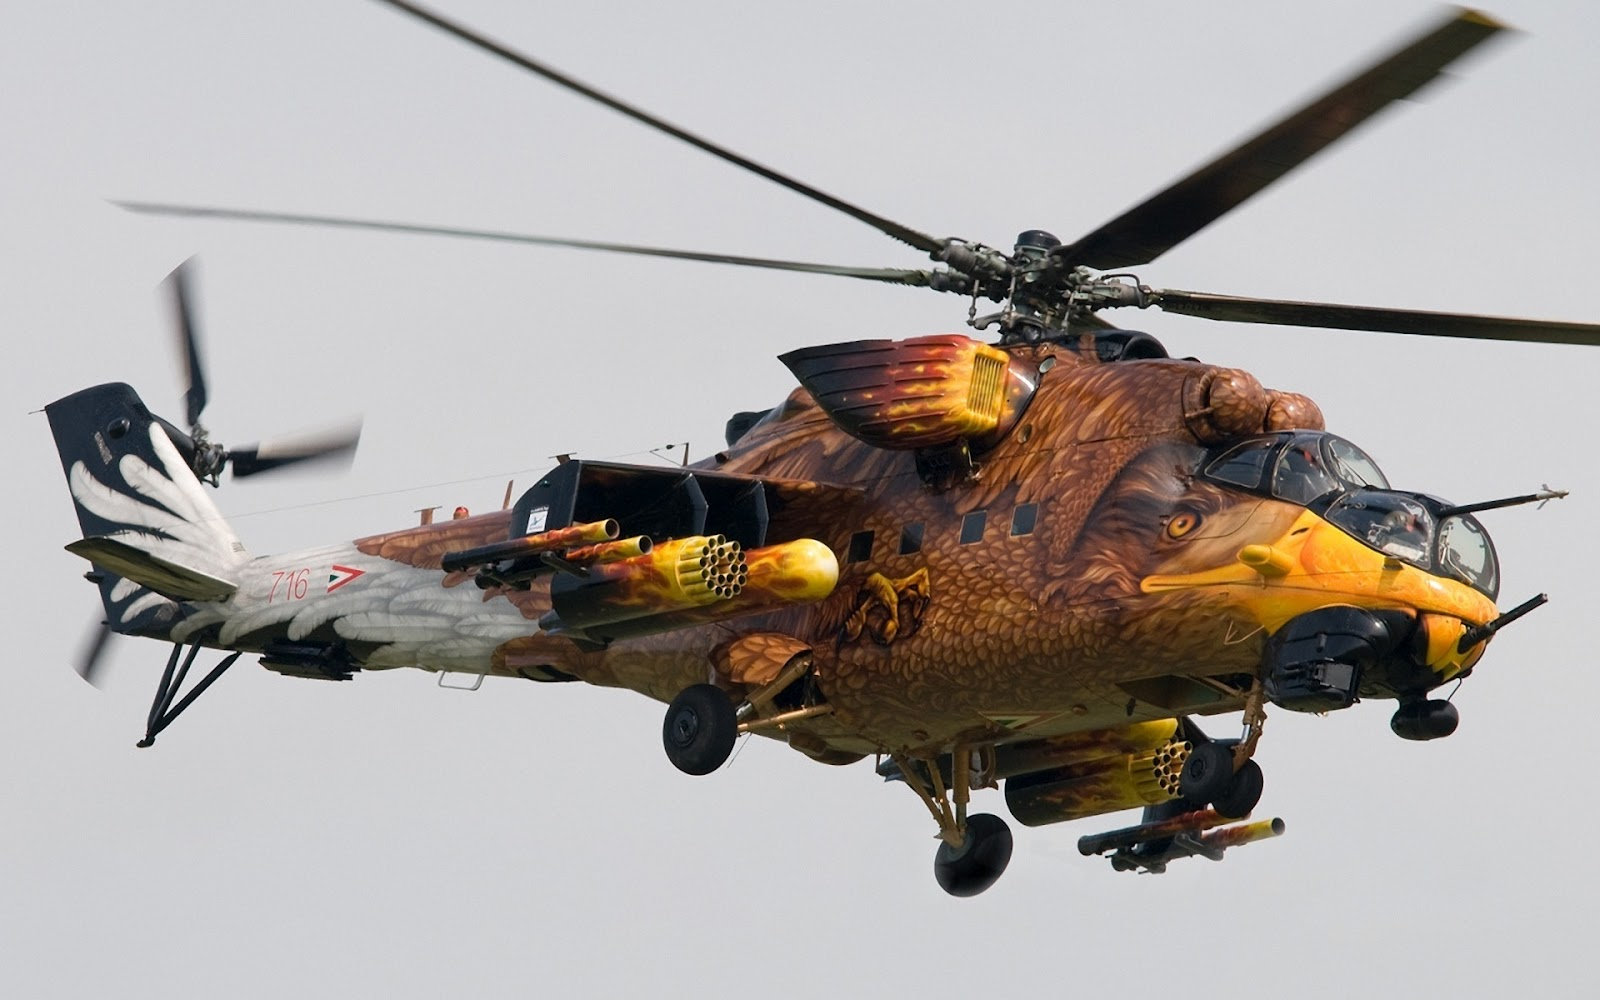 Top 41 Most Incredible And Amazing Helicopter Wallpapers In HD